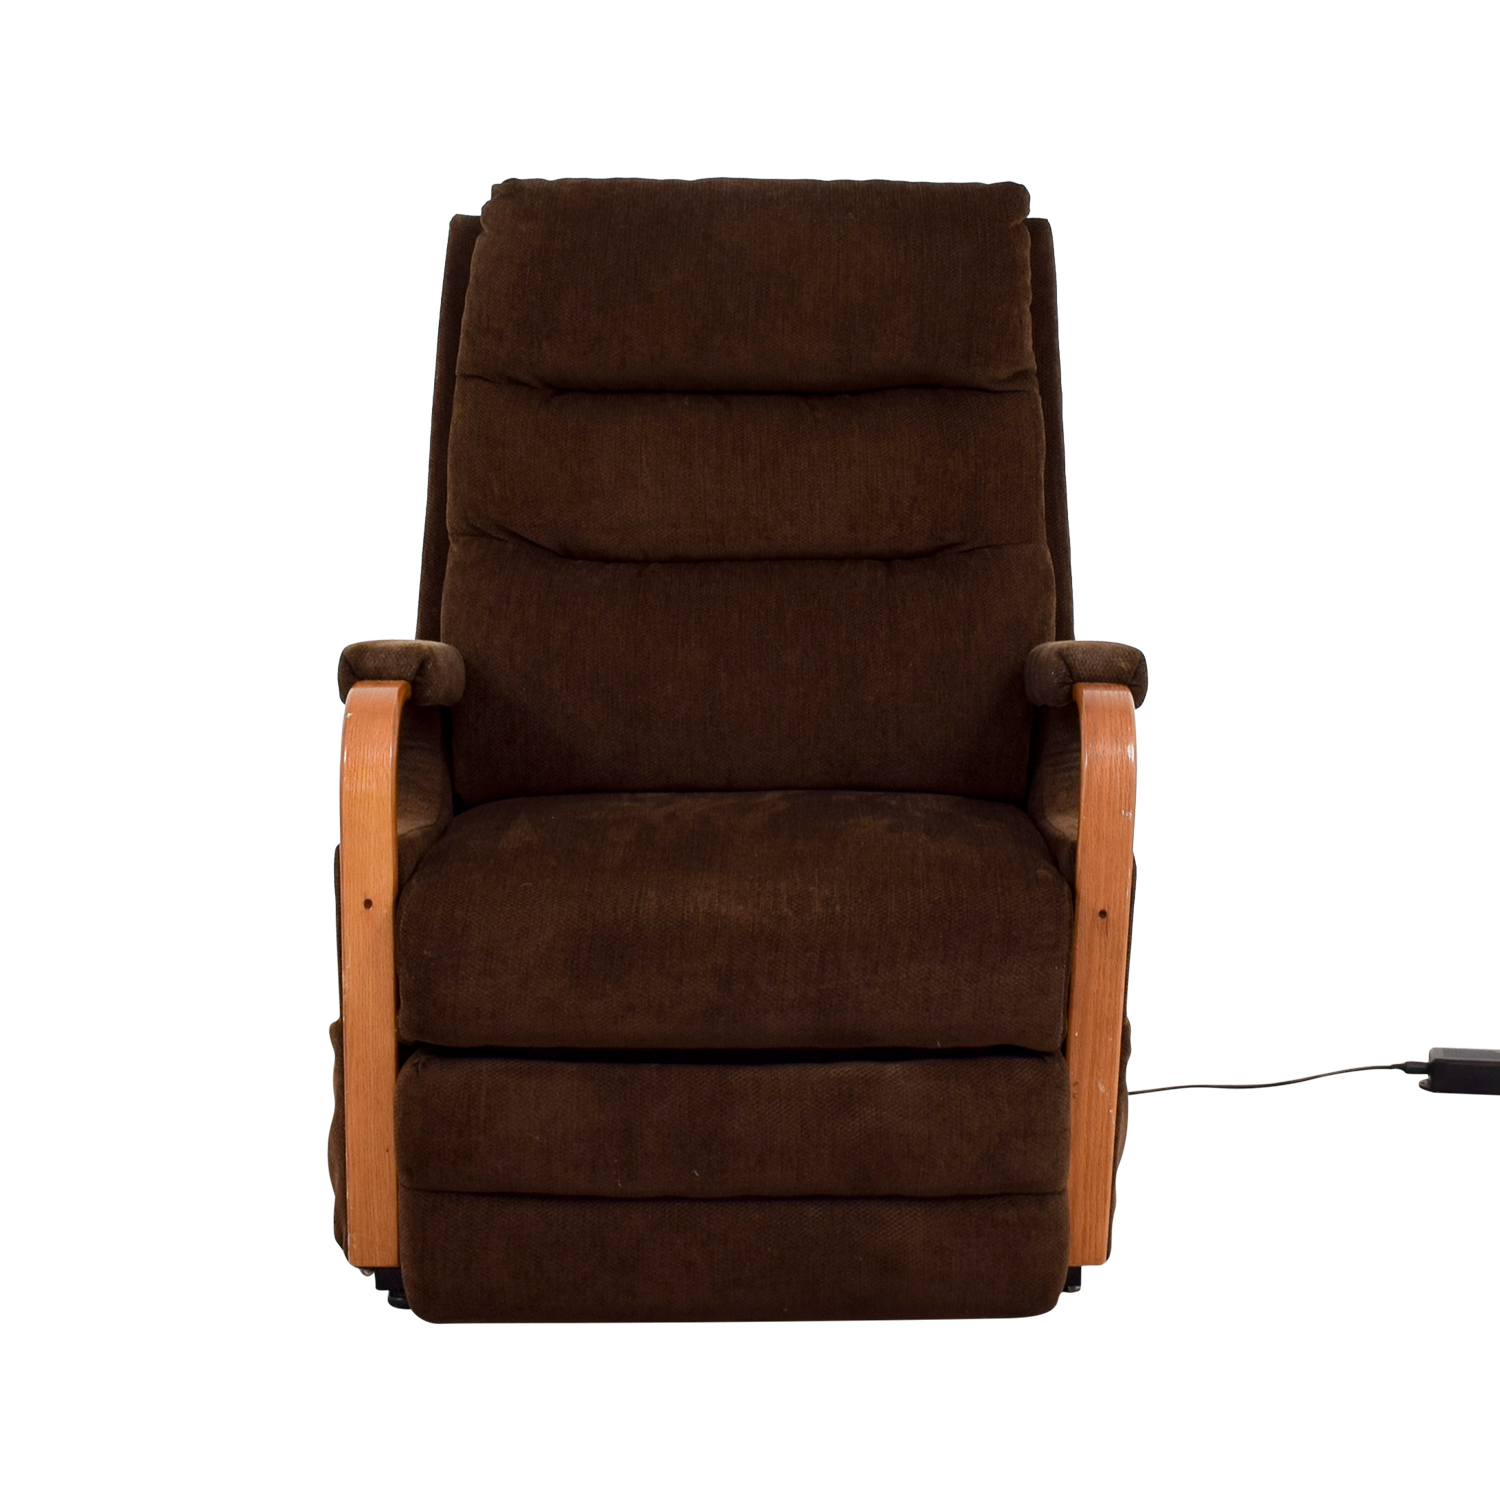 Bobs Furniture Bobs Furniture Brown Remote Control Recliner coupon